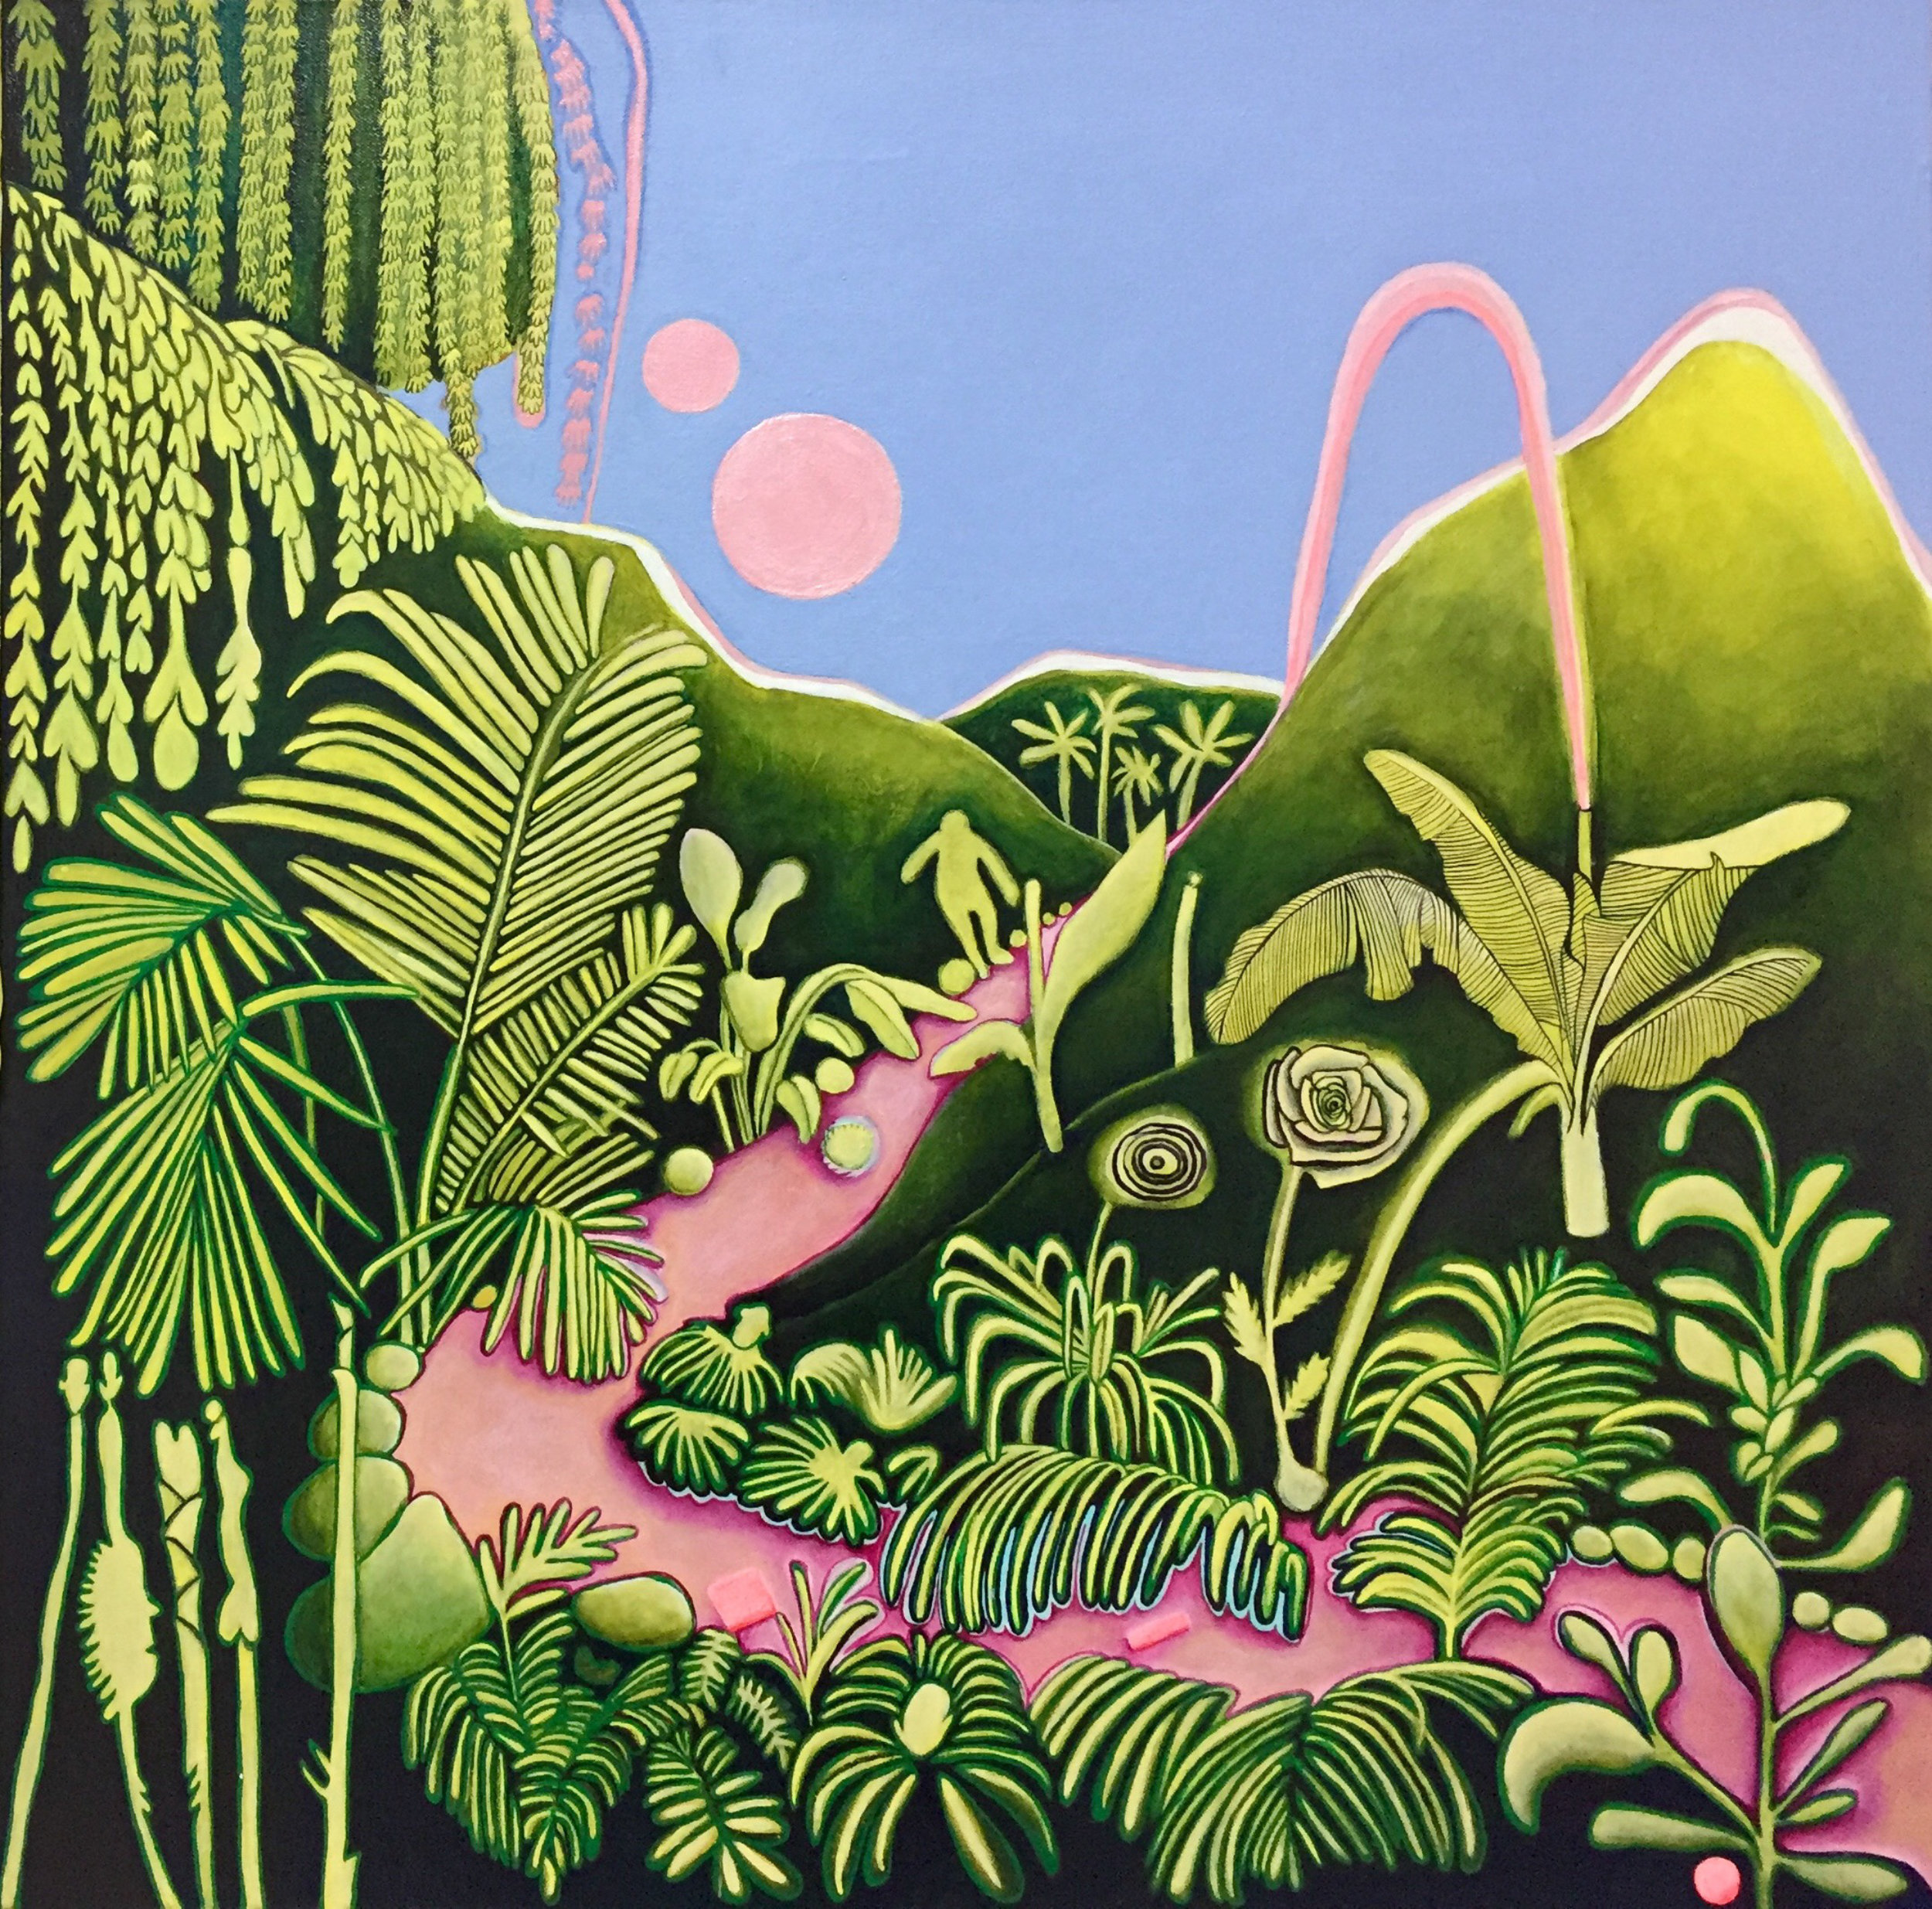 Ana Velasco. The geography of plants 2018. Acrylic on canvas. 24 inches x 24 inches.jpg